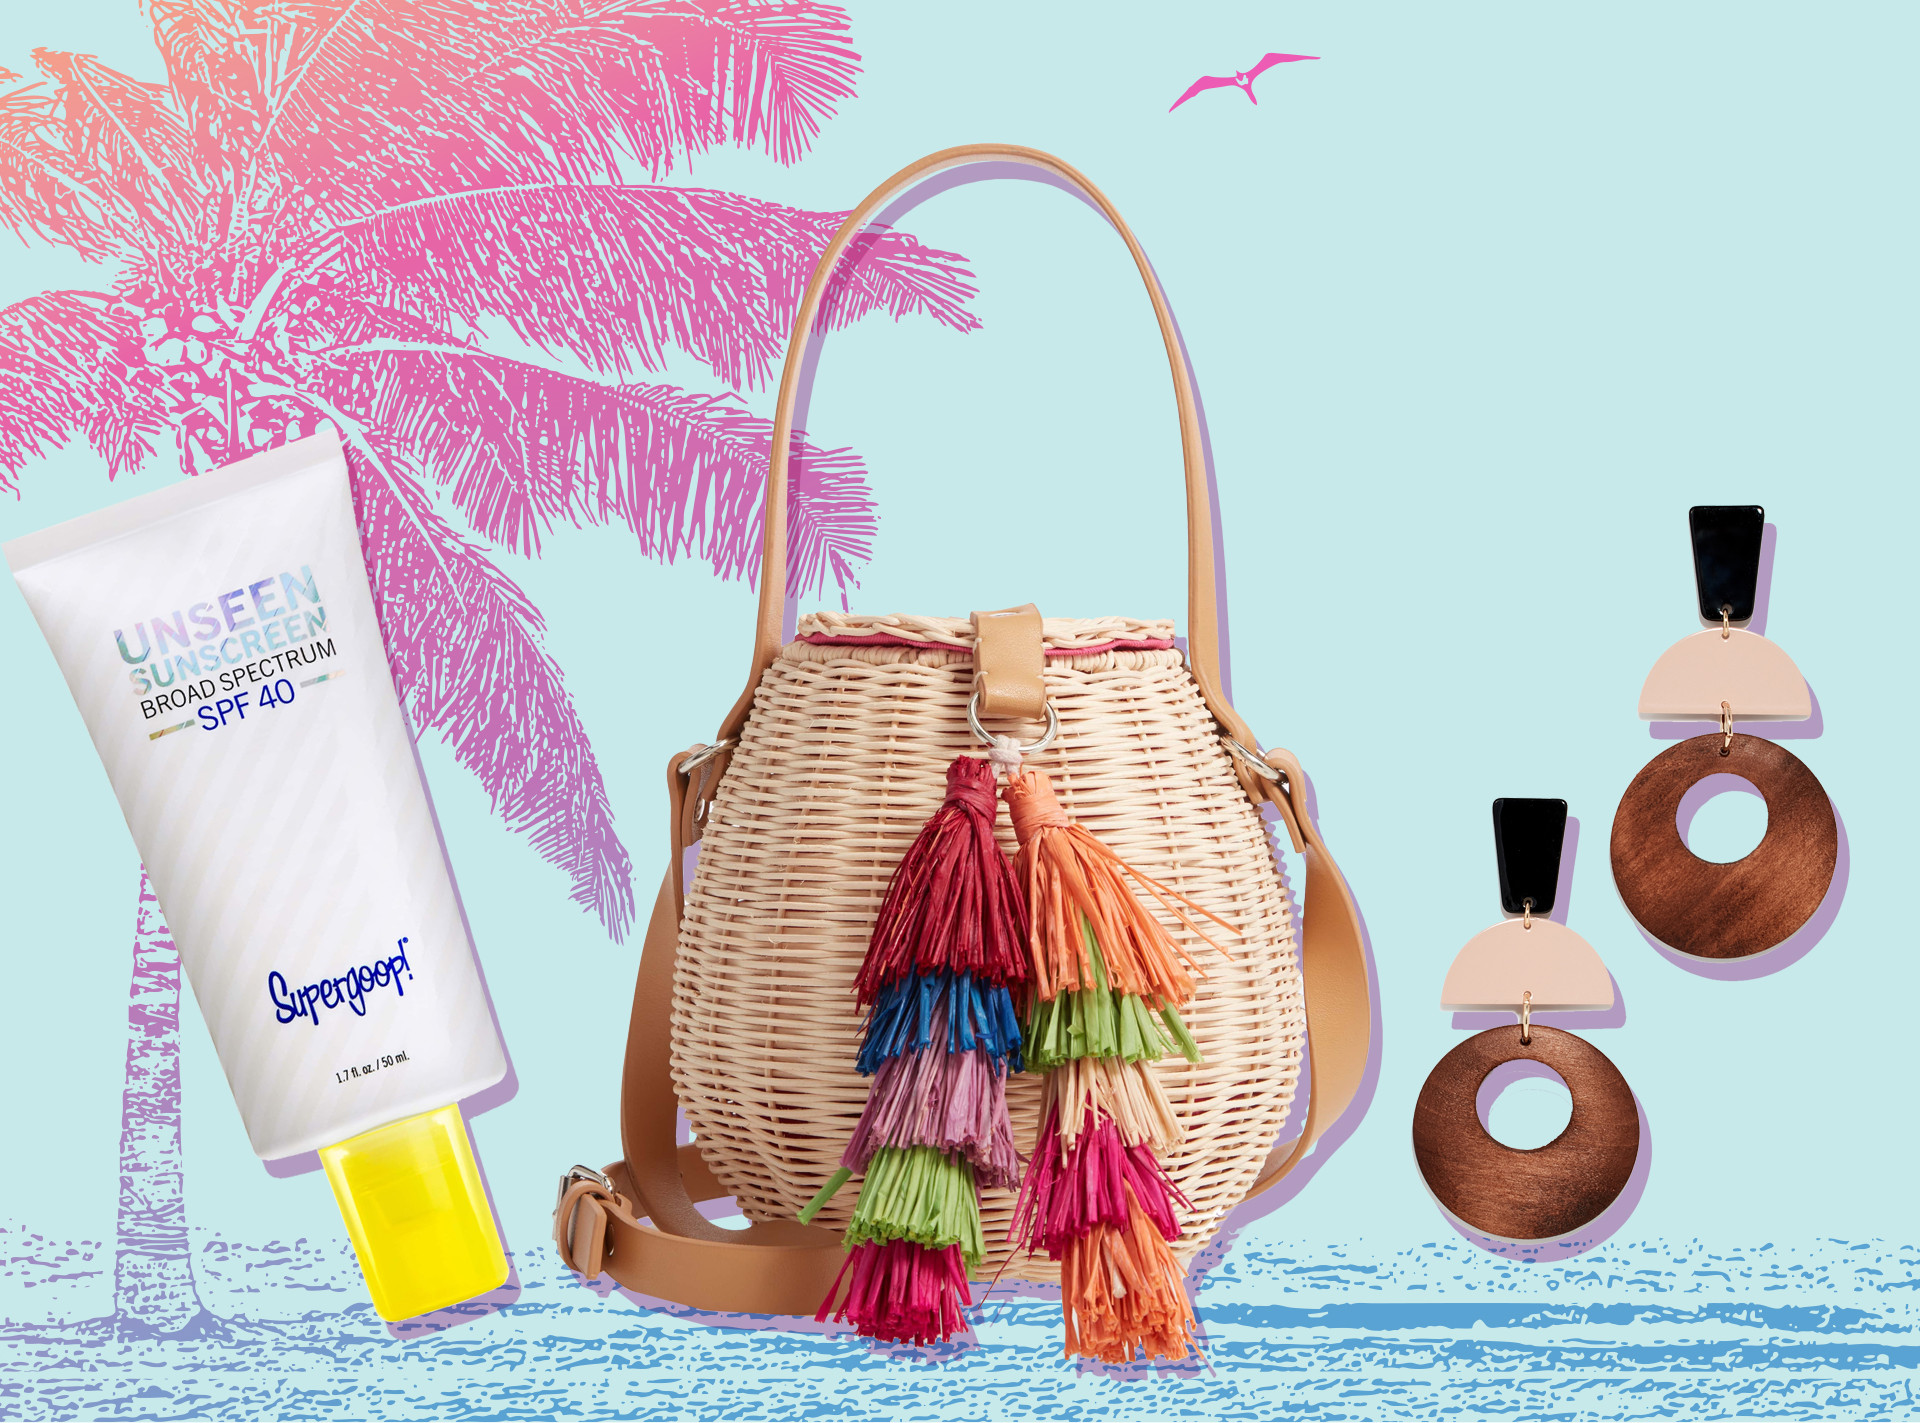 E-Comm: Pack Like a Celeb for Spring Break